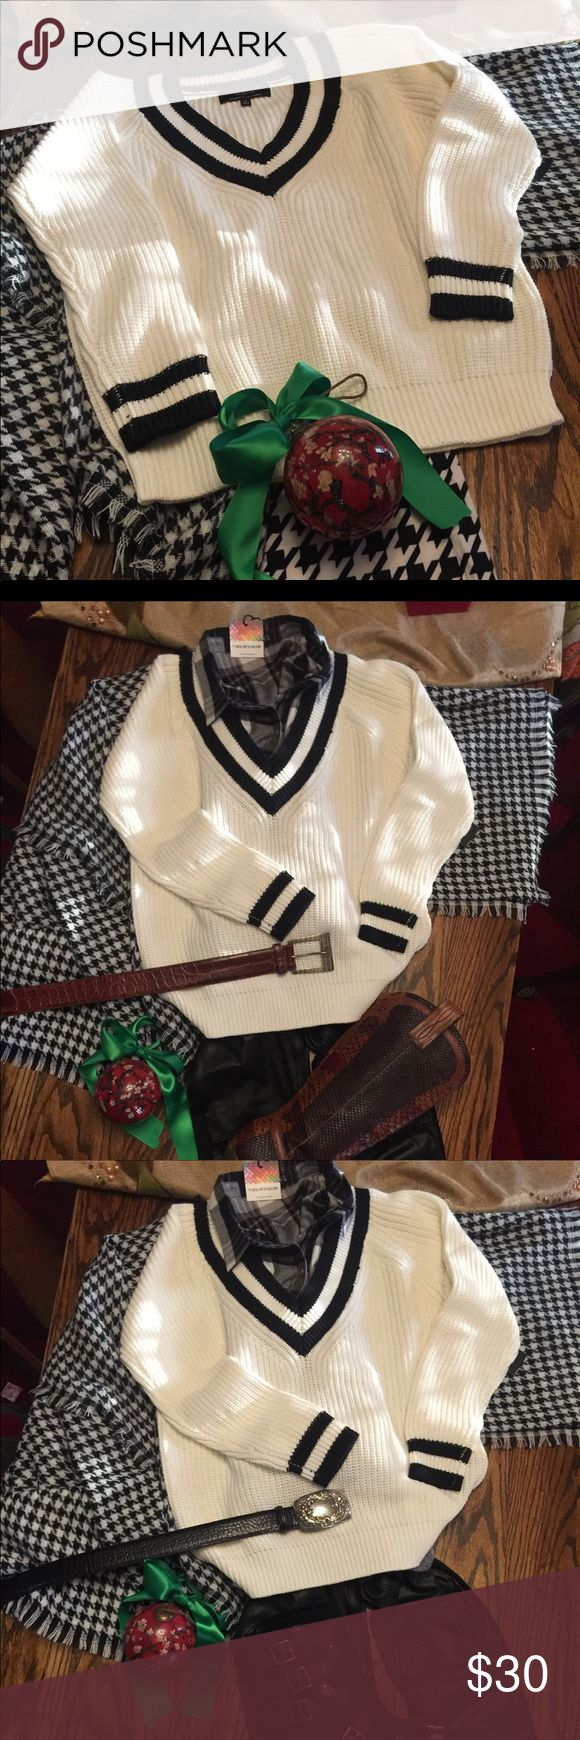 V-white with black stripe sweater Cotton 50, acrylic 30, poly 20. Pullover V-neck sweater. This is a substantial thickness and a great core wardrobe piece. Love the value of this bunch! White group with this order selection Sweaters V-Necks